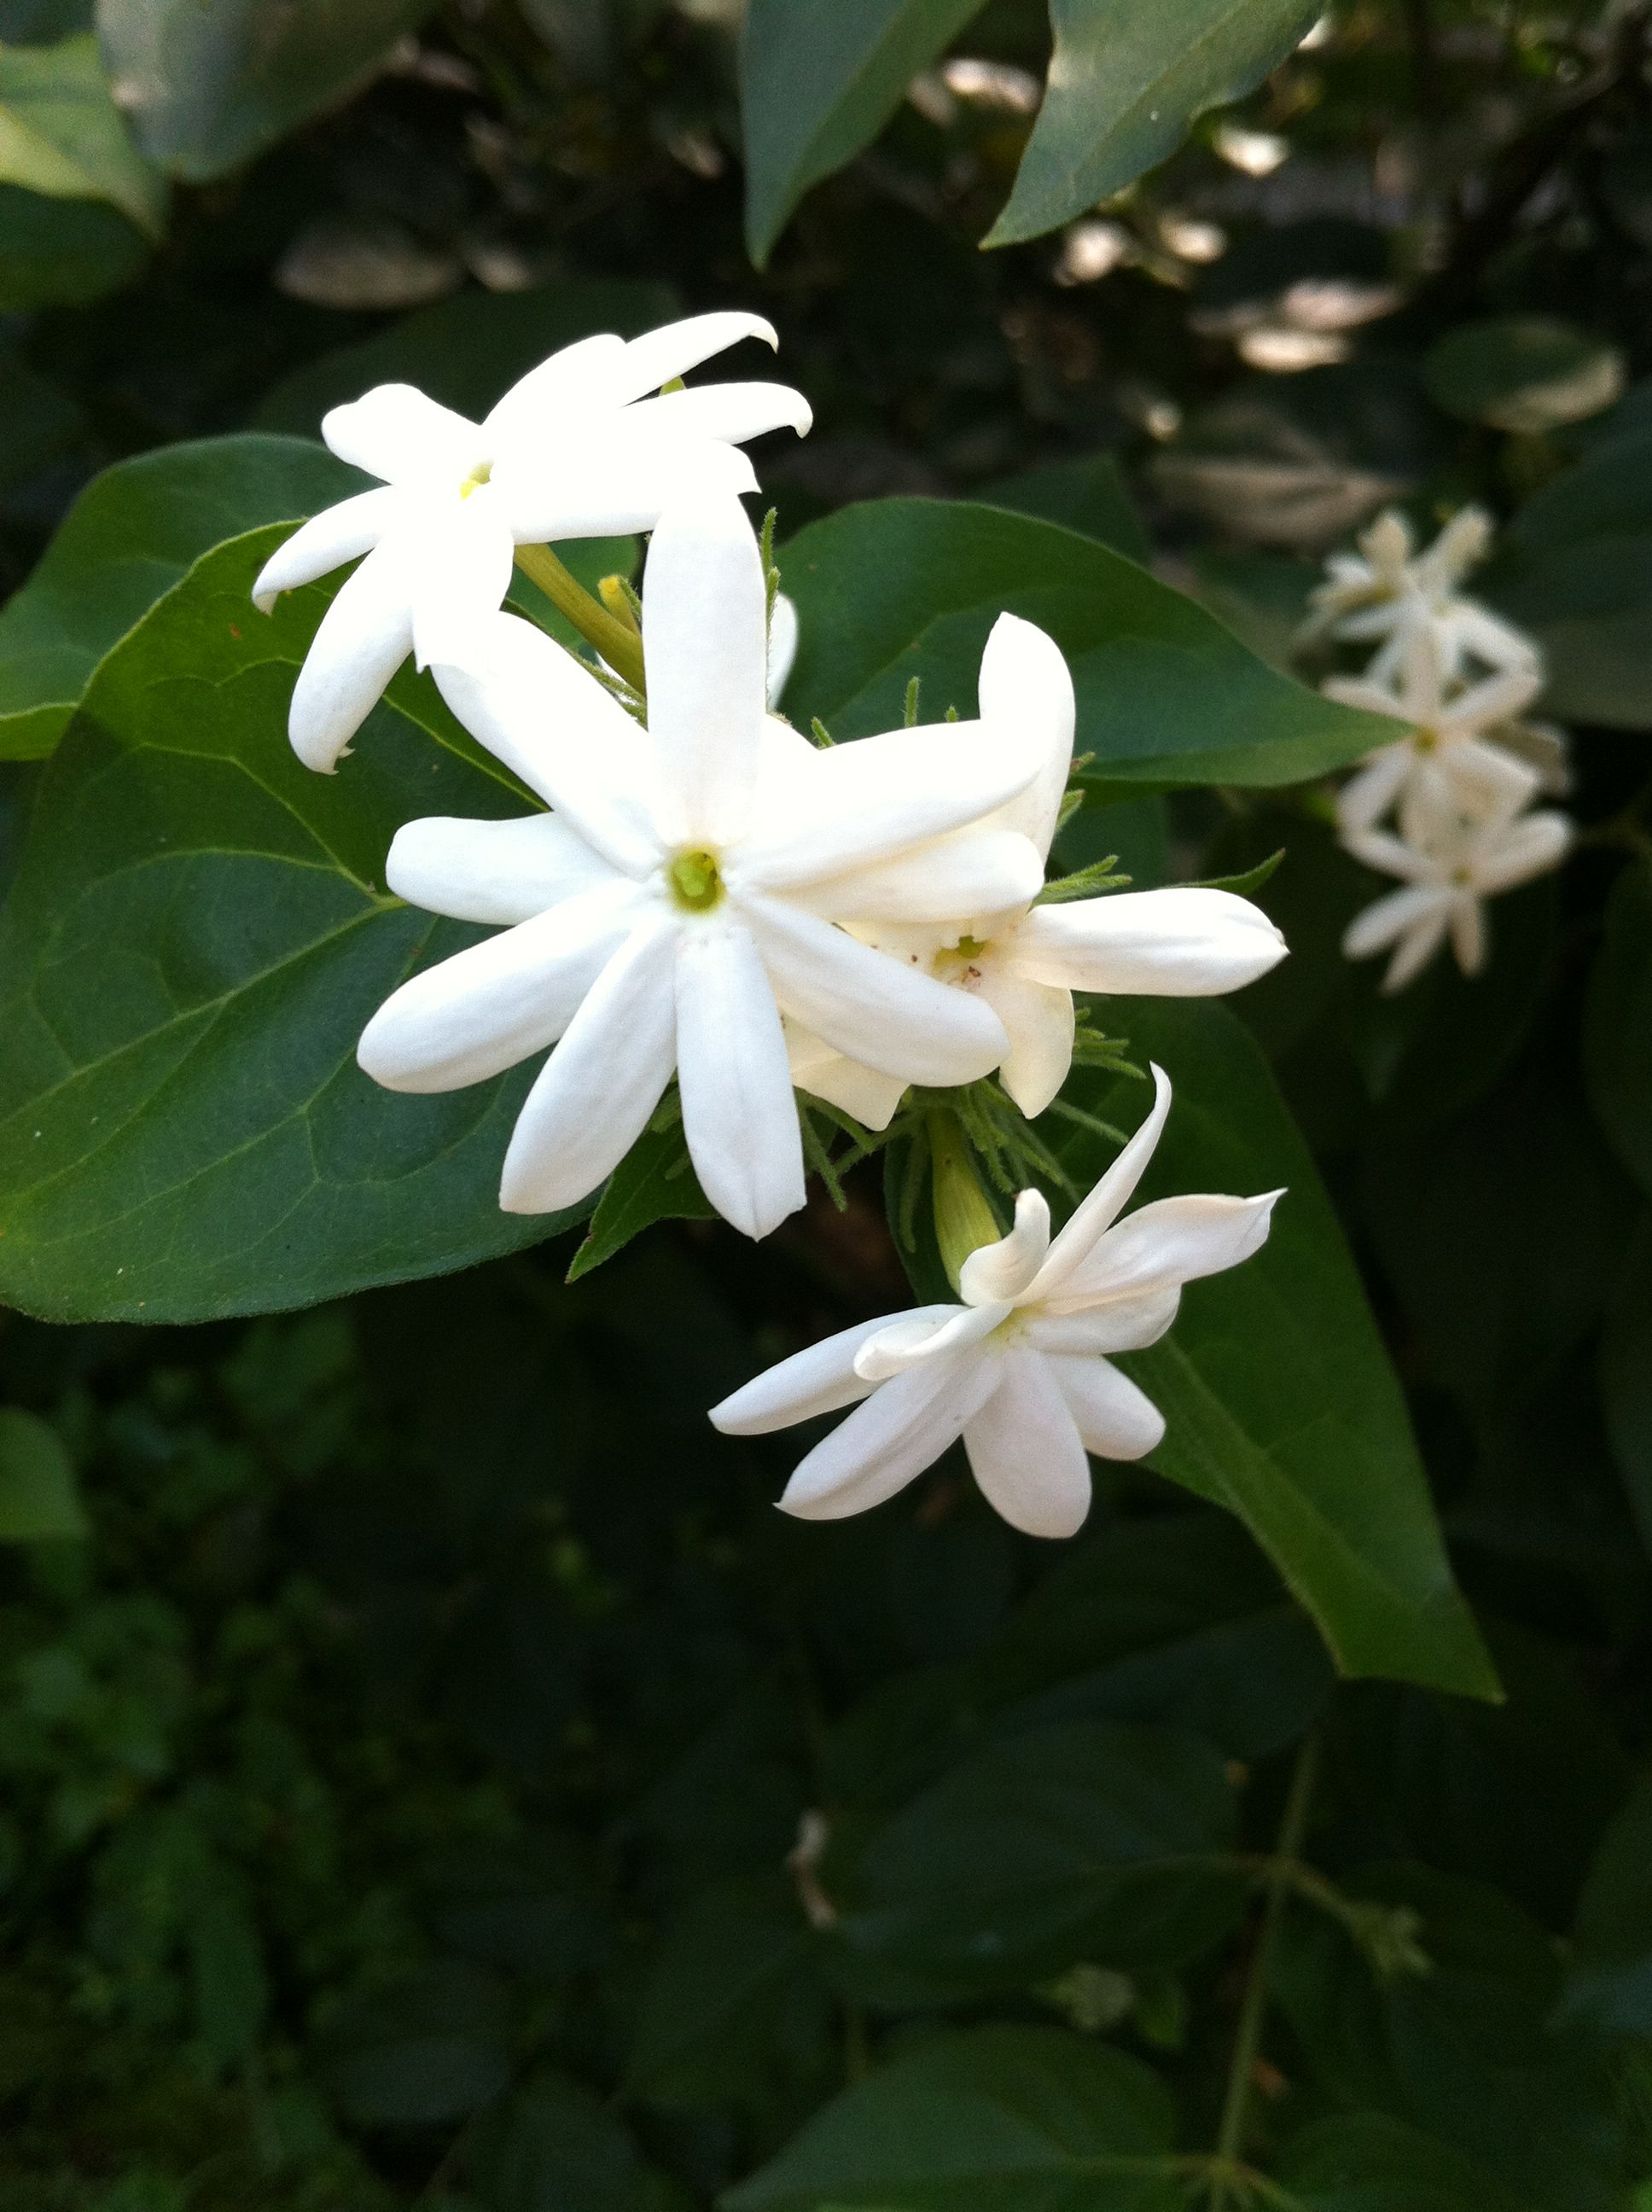 Jasmine in a Bali temple, a powerful scent said to increase your magnetism and beauty!